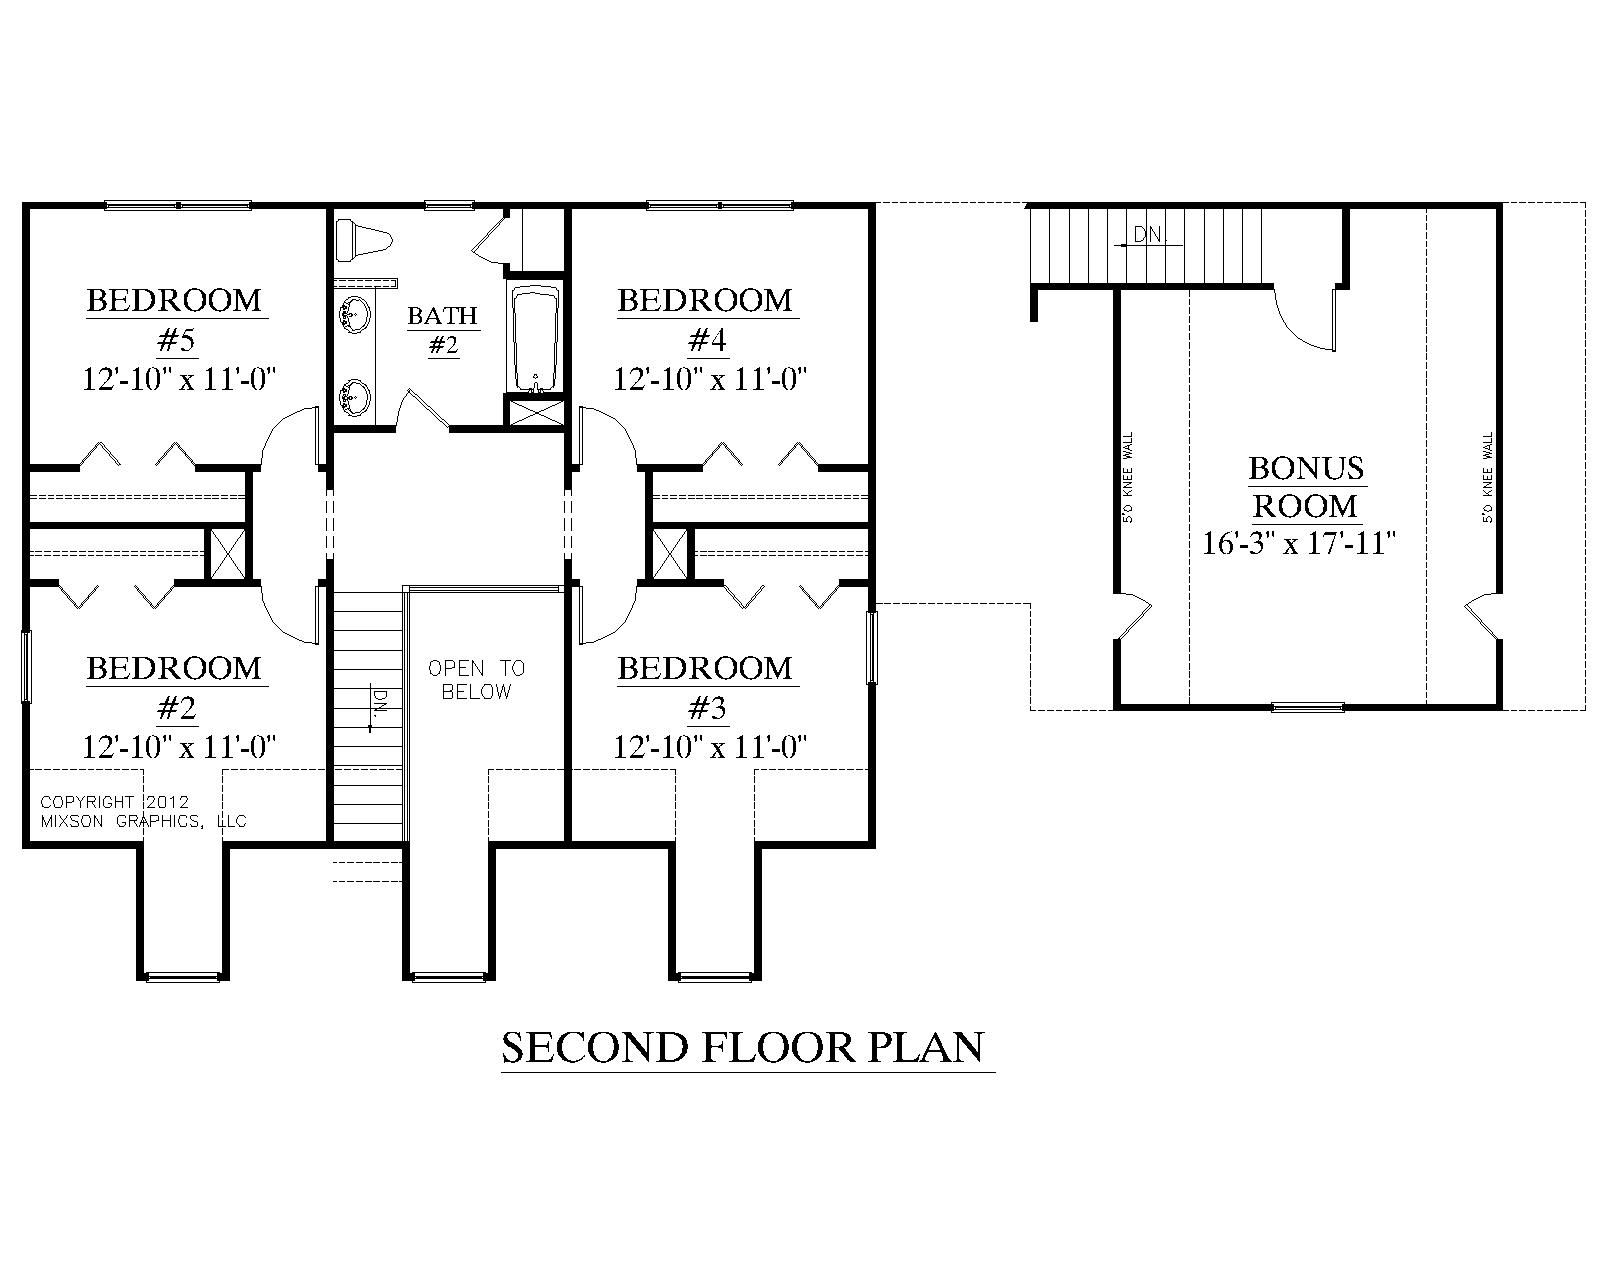 House Plan A Montgomery A Second Floor Plan